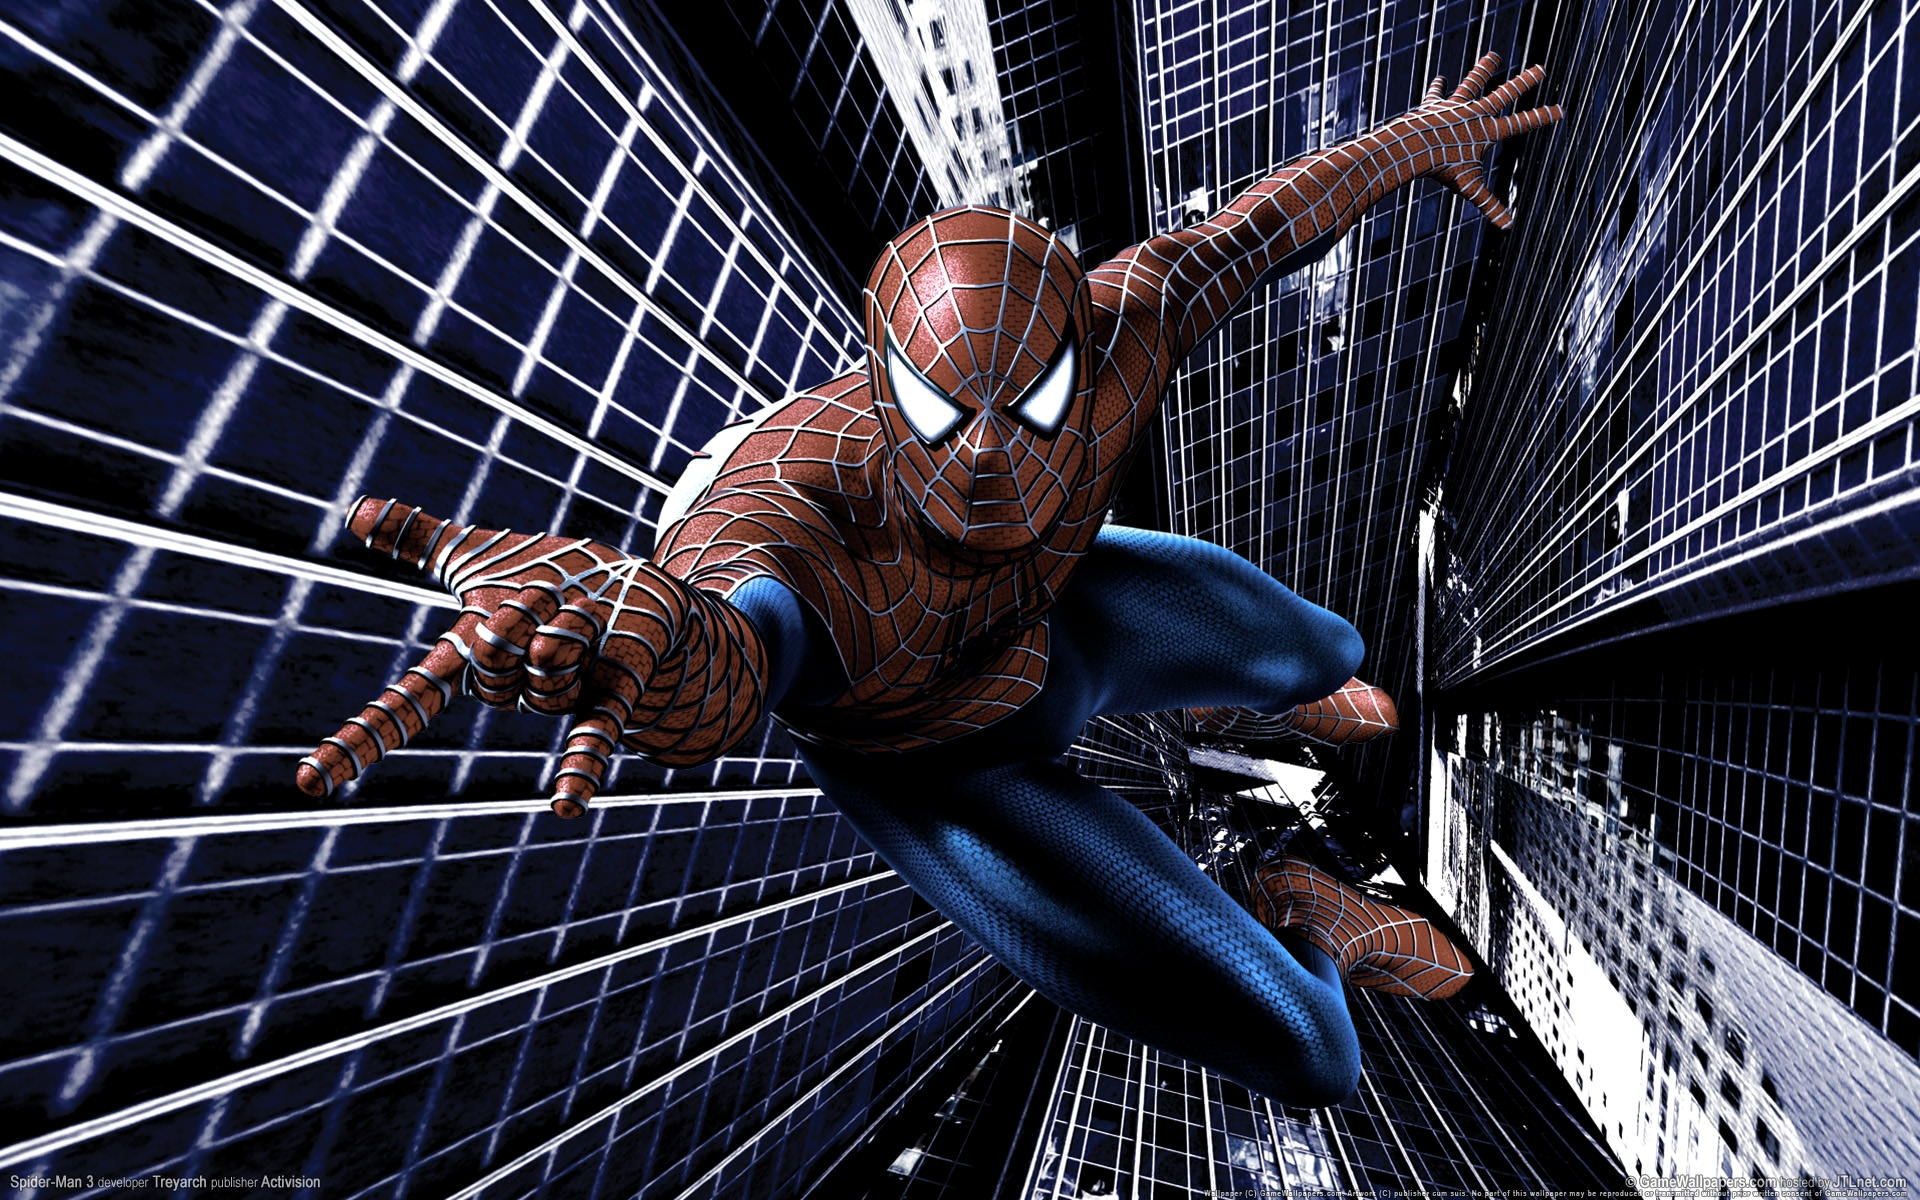 Fantastic Spiderman Wallpaper